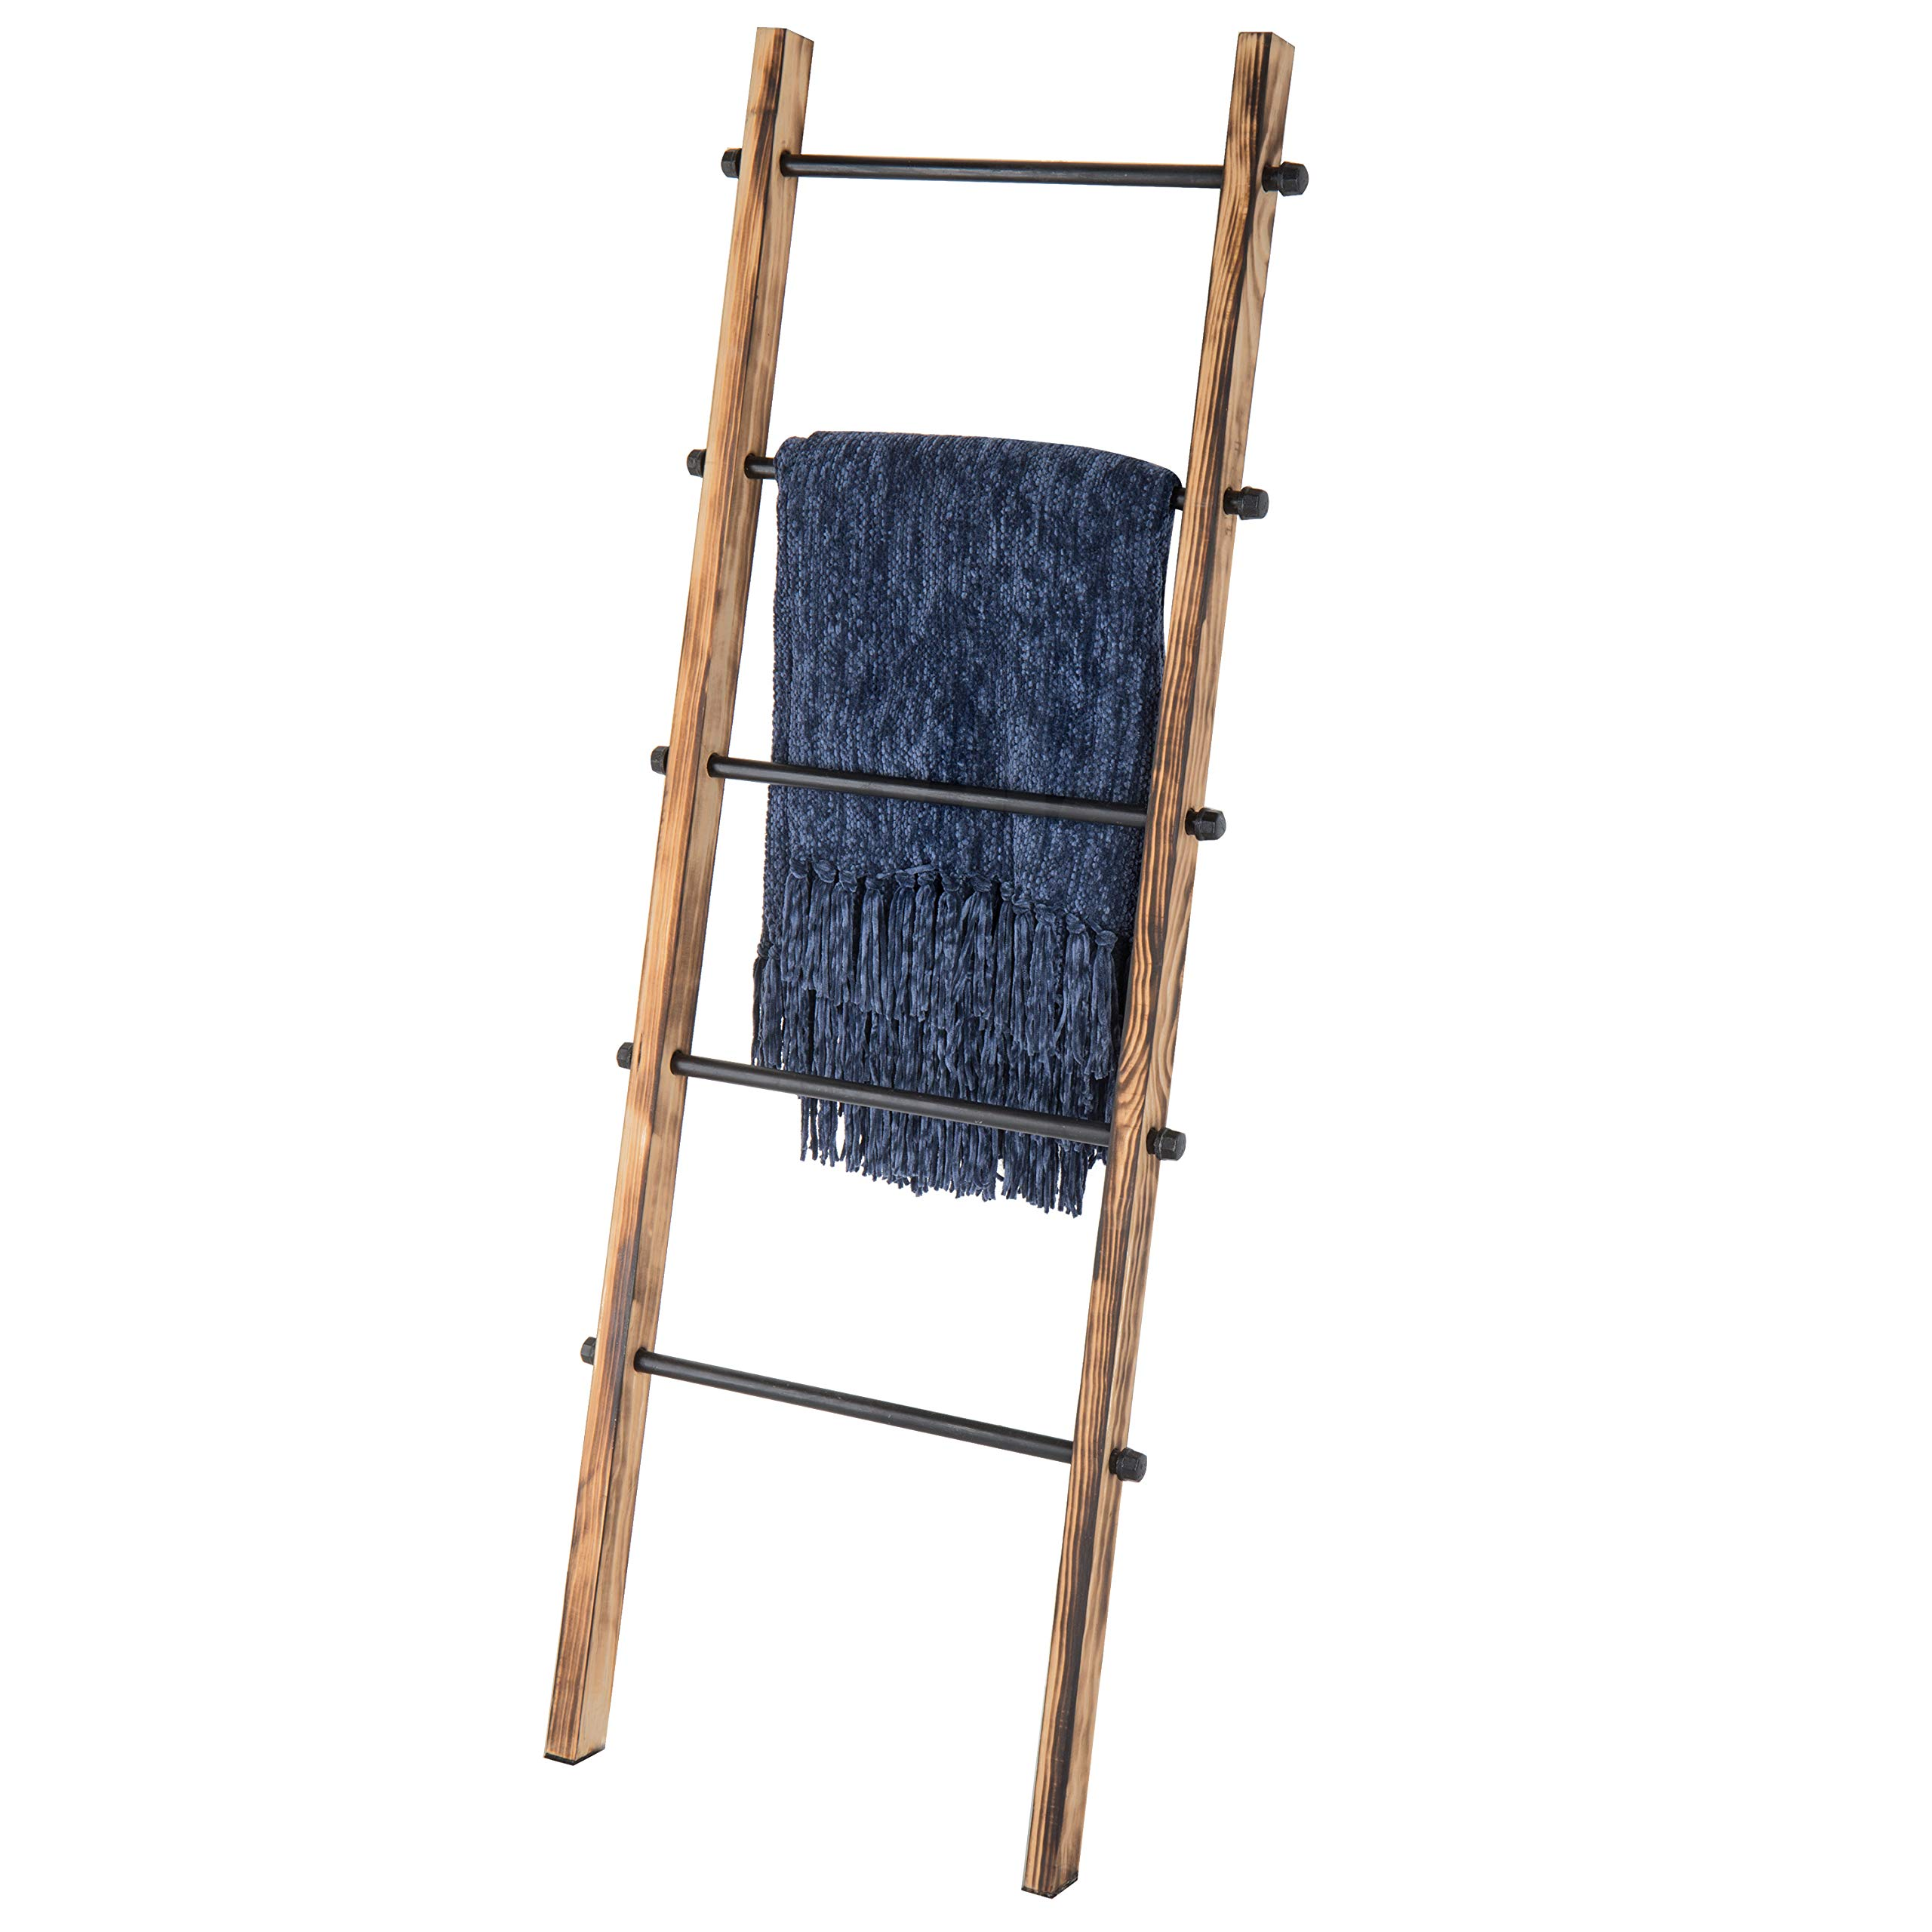 MyGift 5-ft Urban Rustic Wall-Leaning Wood & Metal Blanket Ladder by MyGift